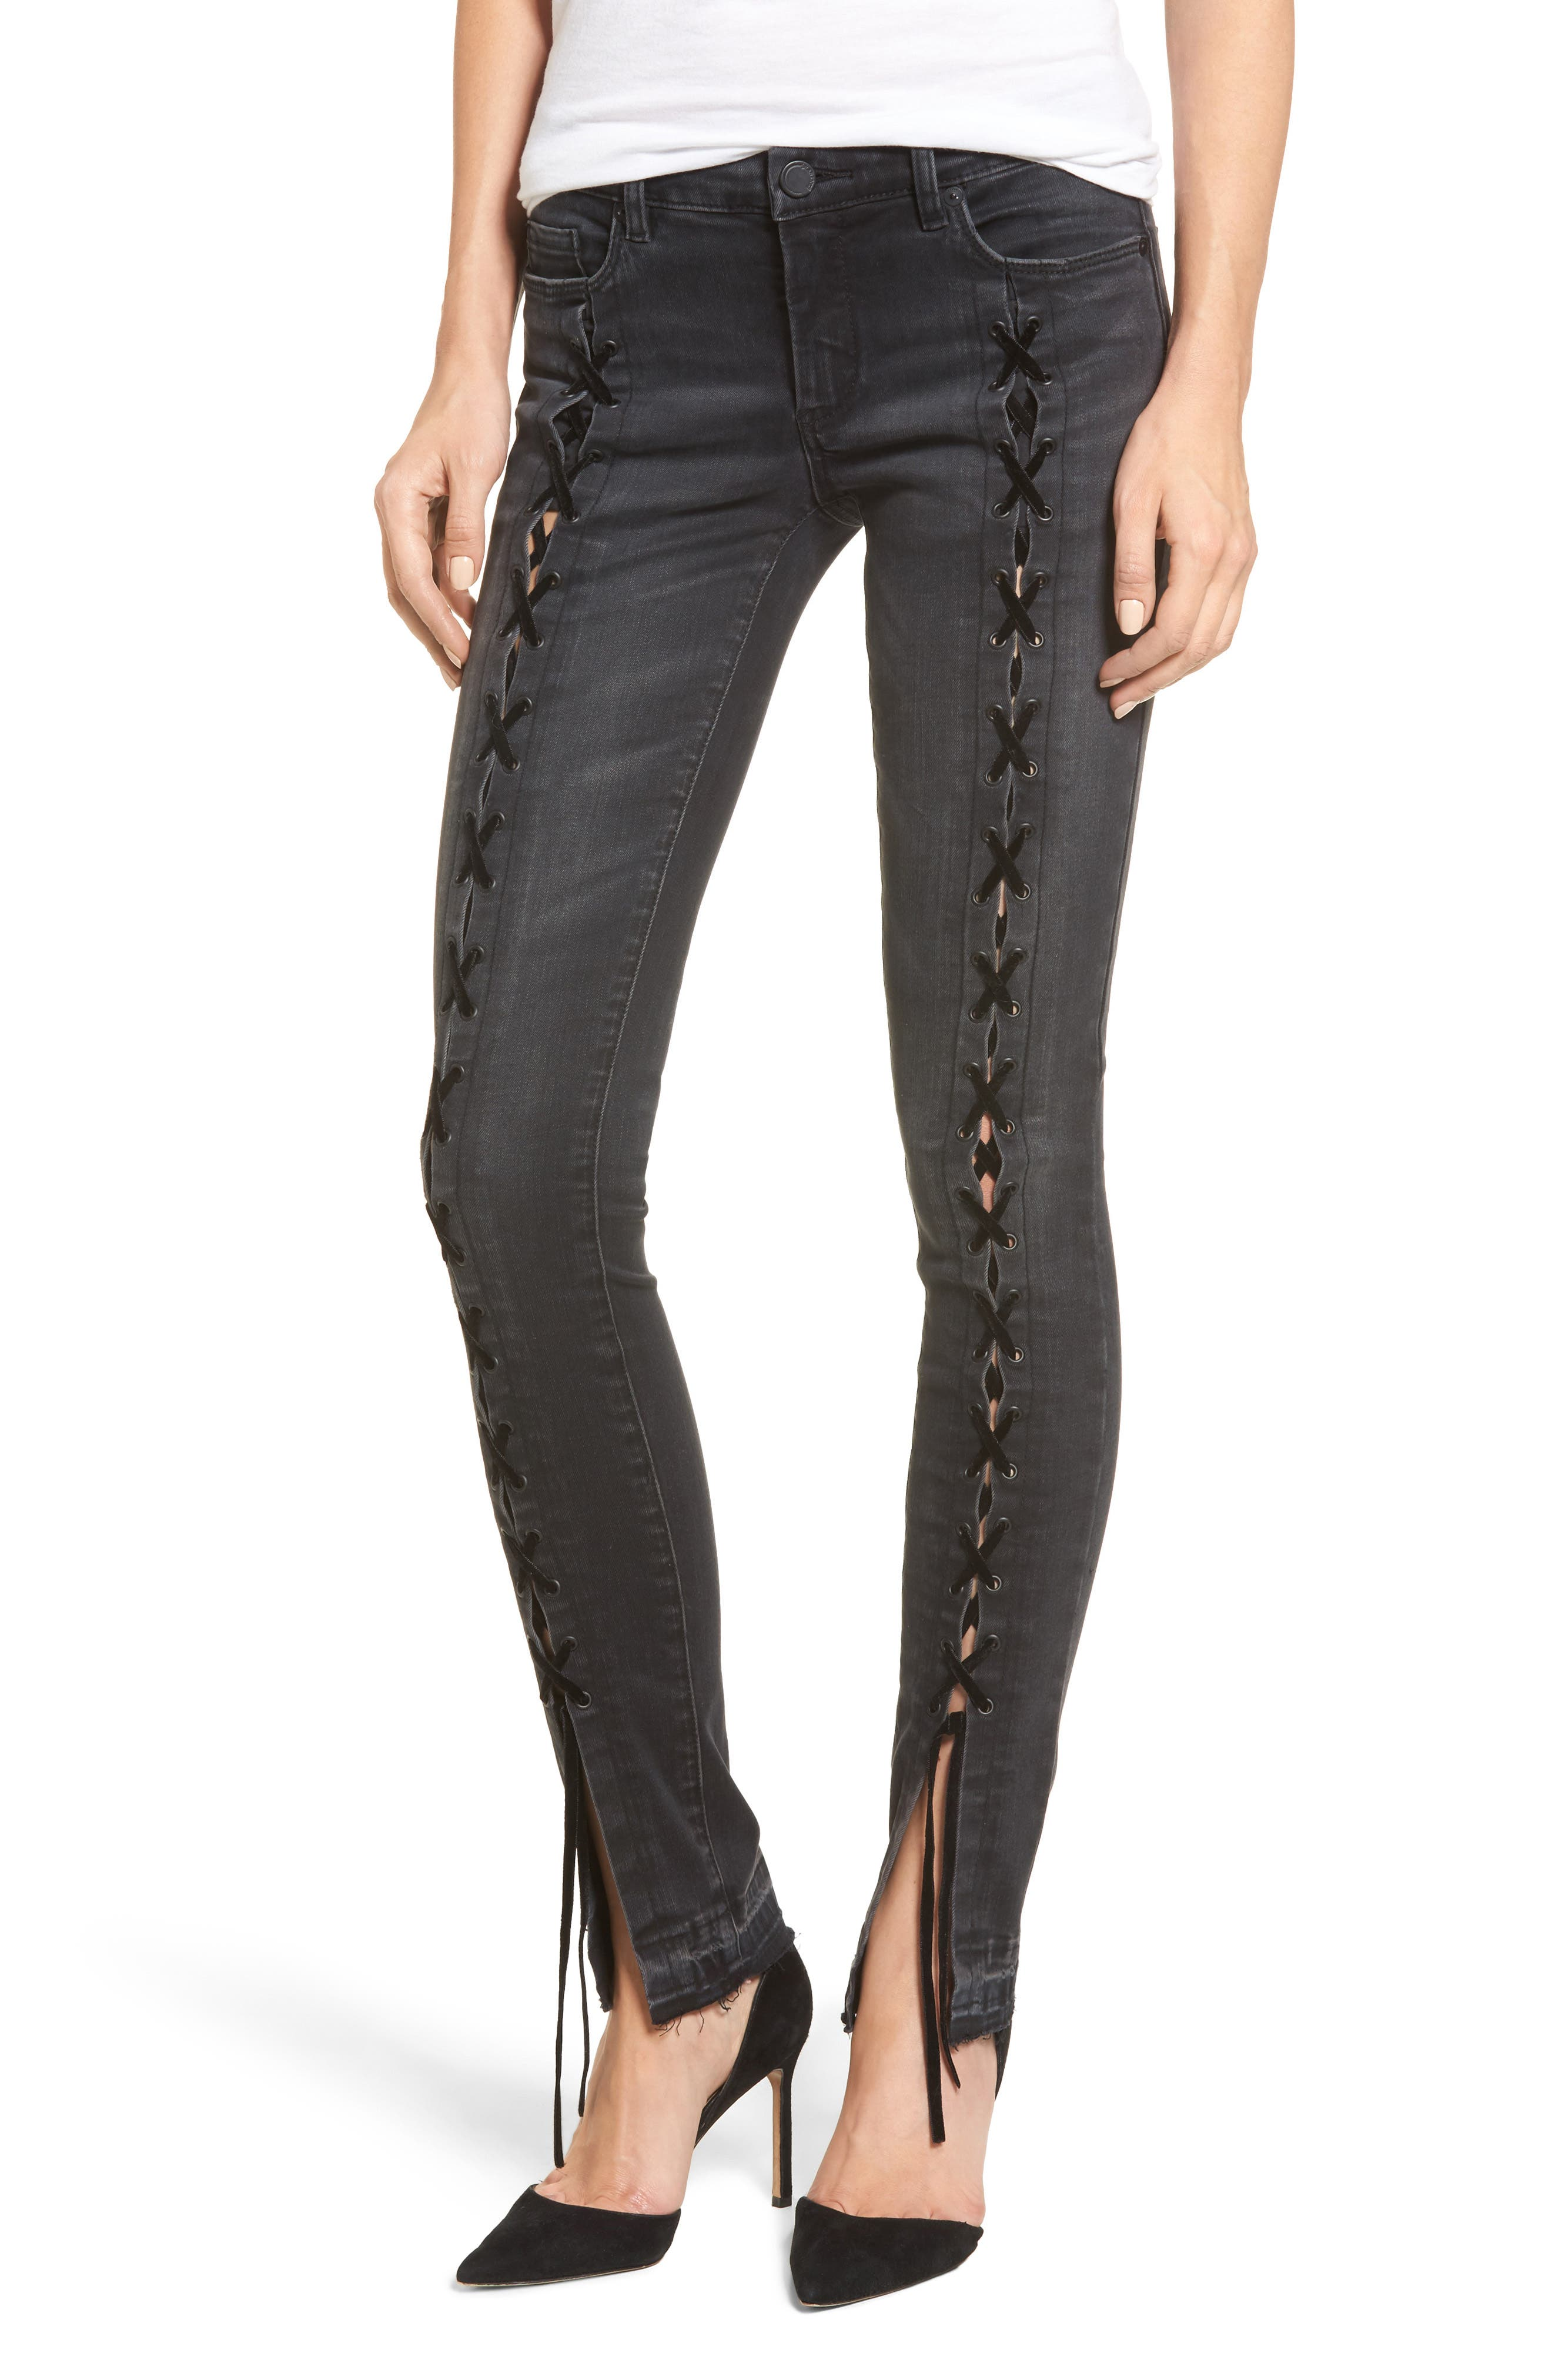 Crash Tactics Lace Up Skinny Jeans,                         Main,                         color,